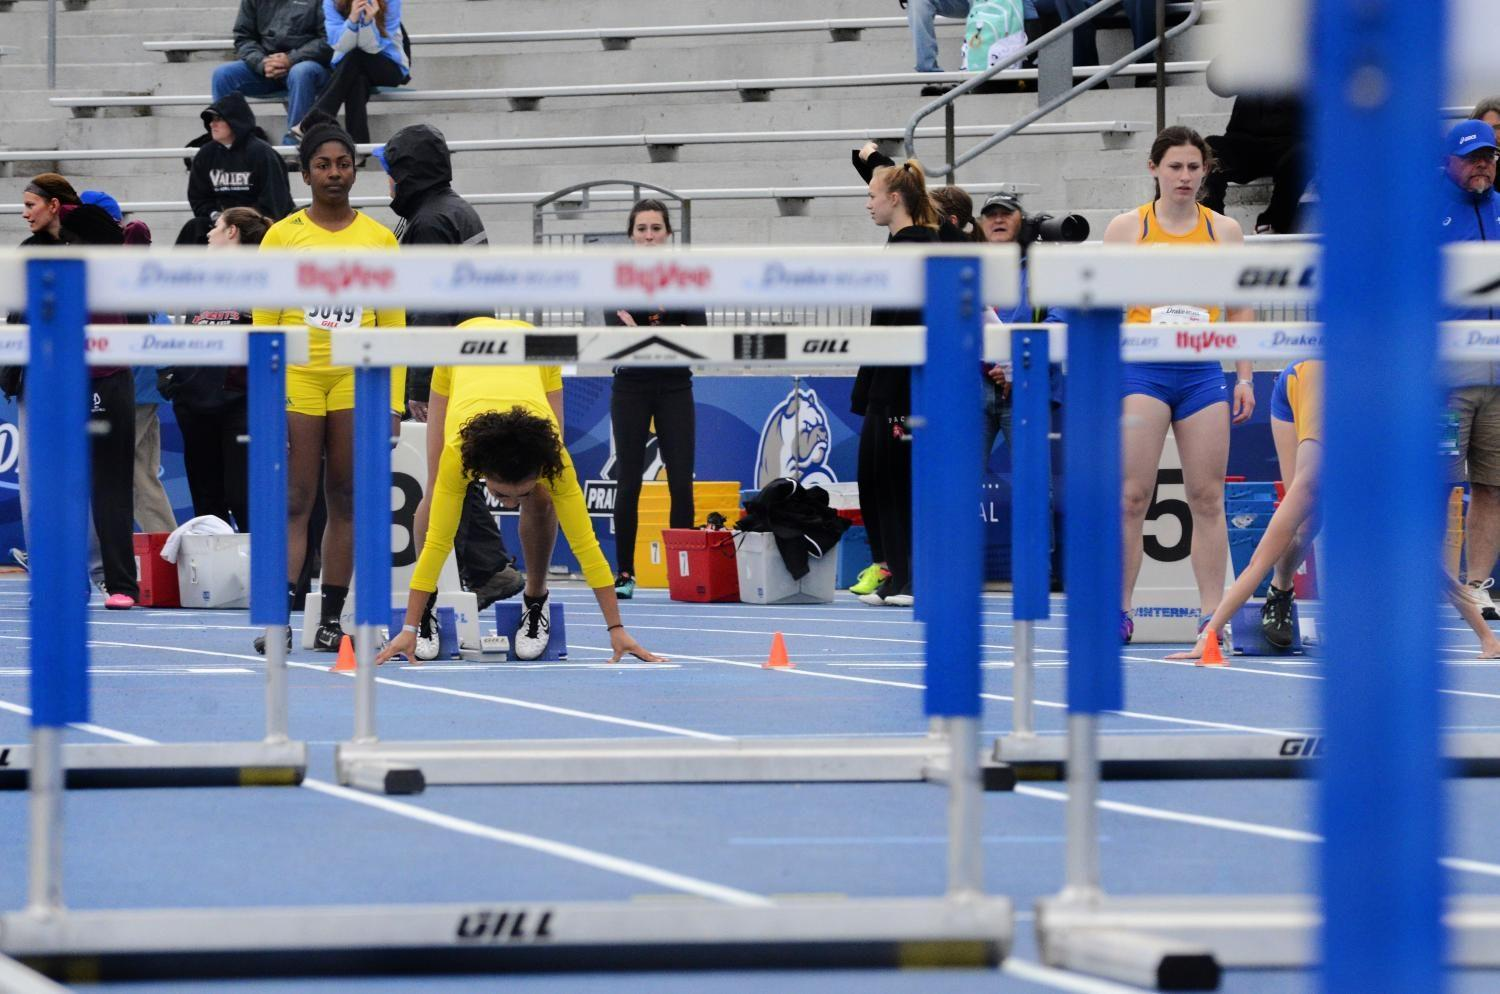 Kitra Bell '18 sets up in her blocks for the girls shuttle hurdle relay on Saturday, May 29 at the Drake Relays. The girls placed second in the event, breaking the school record.